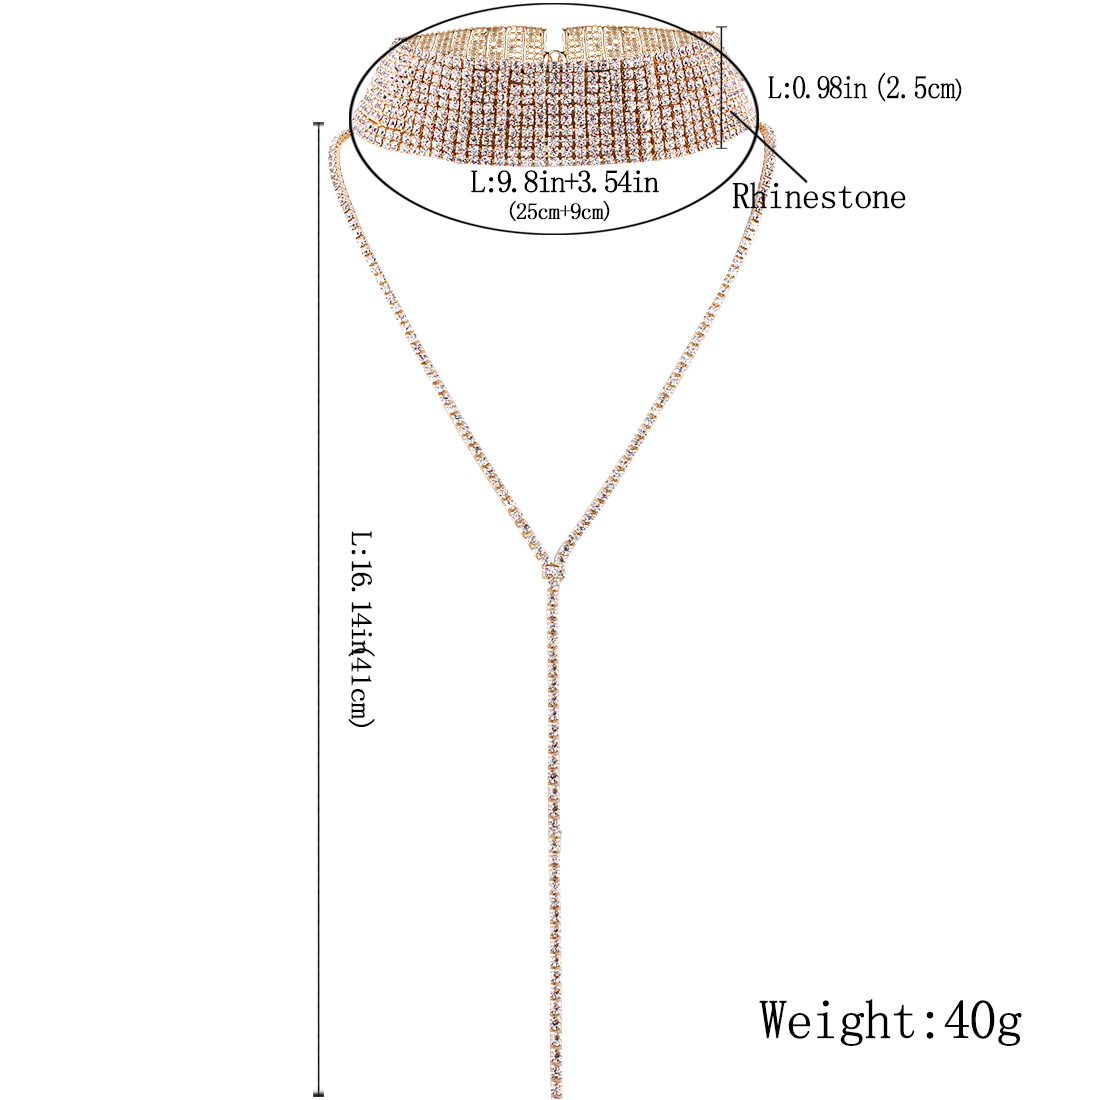 Personalized jewelry popular neck chain choker multilayer full diamond necklace NHMD177682